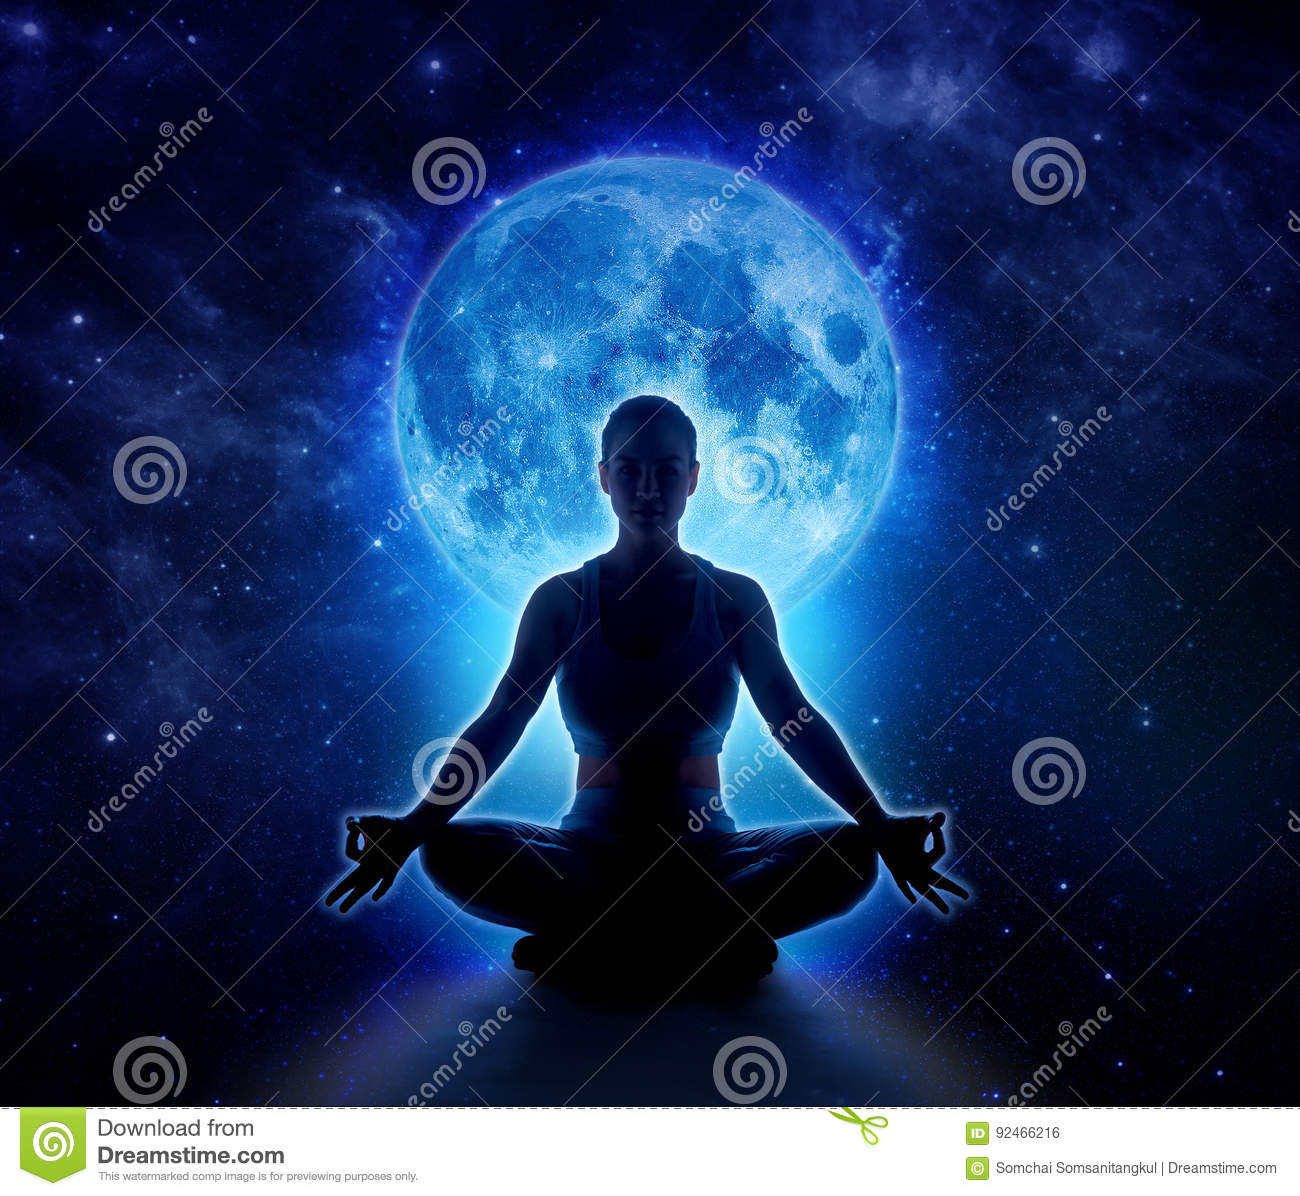 Yoga woman in moon and star. Meditation girl in moonlight